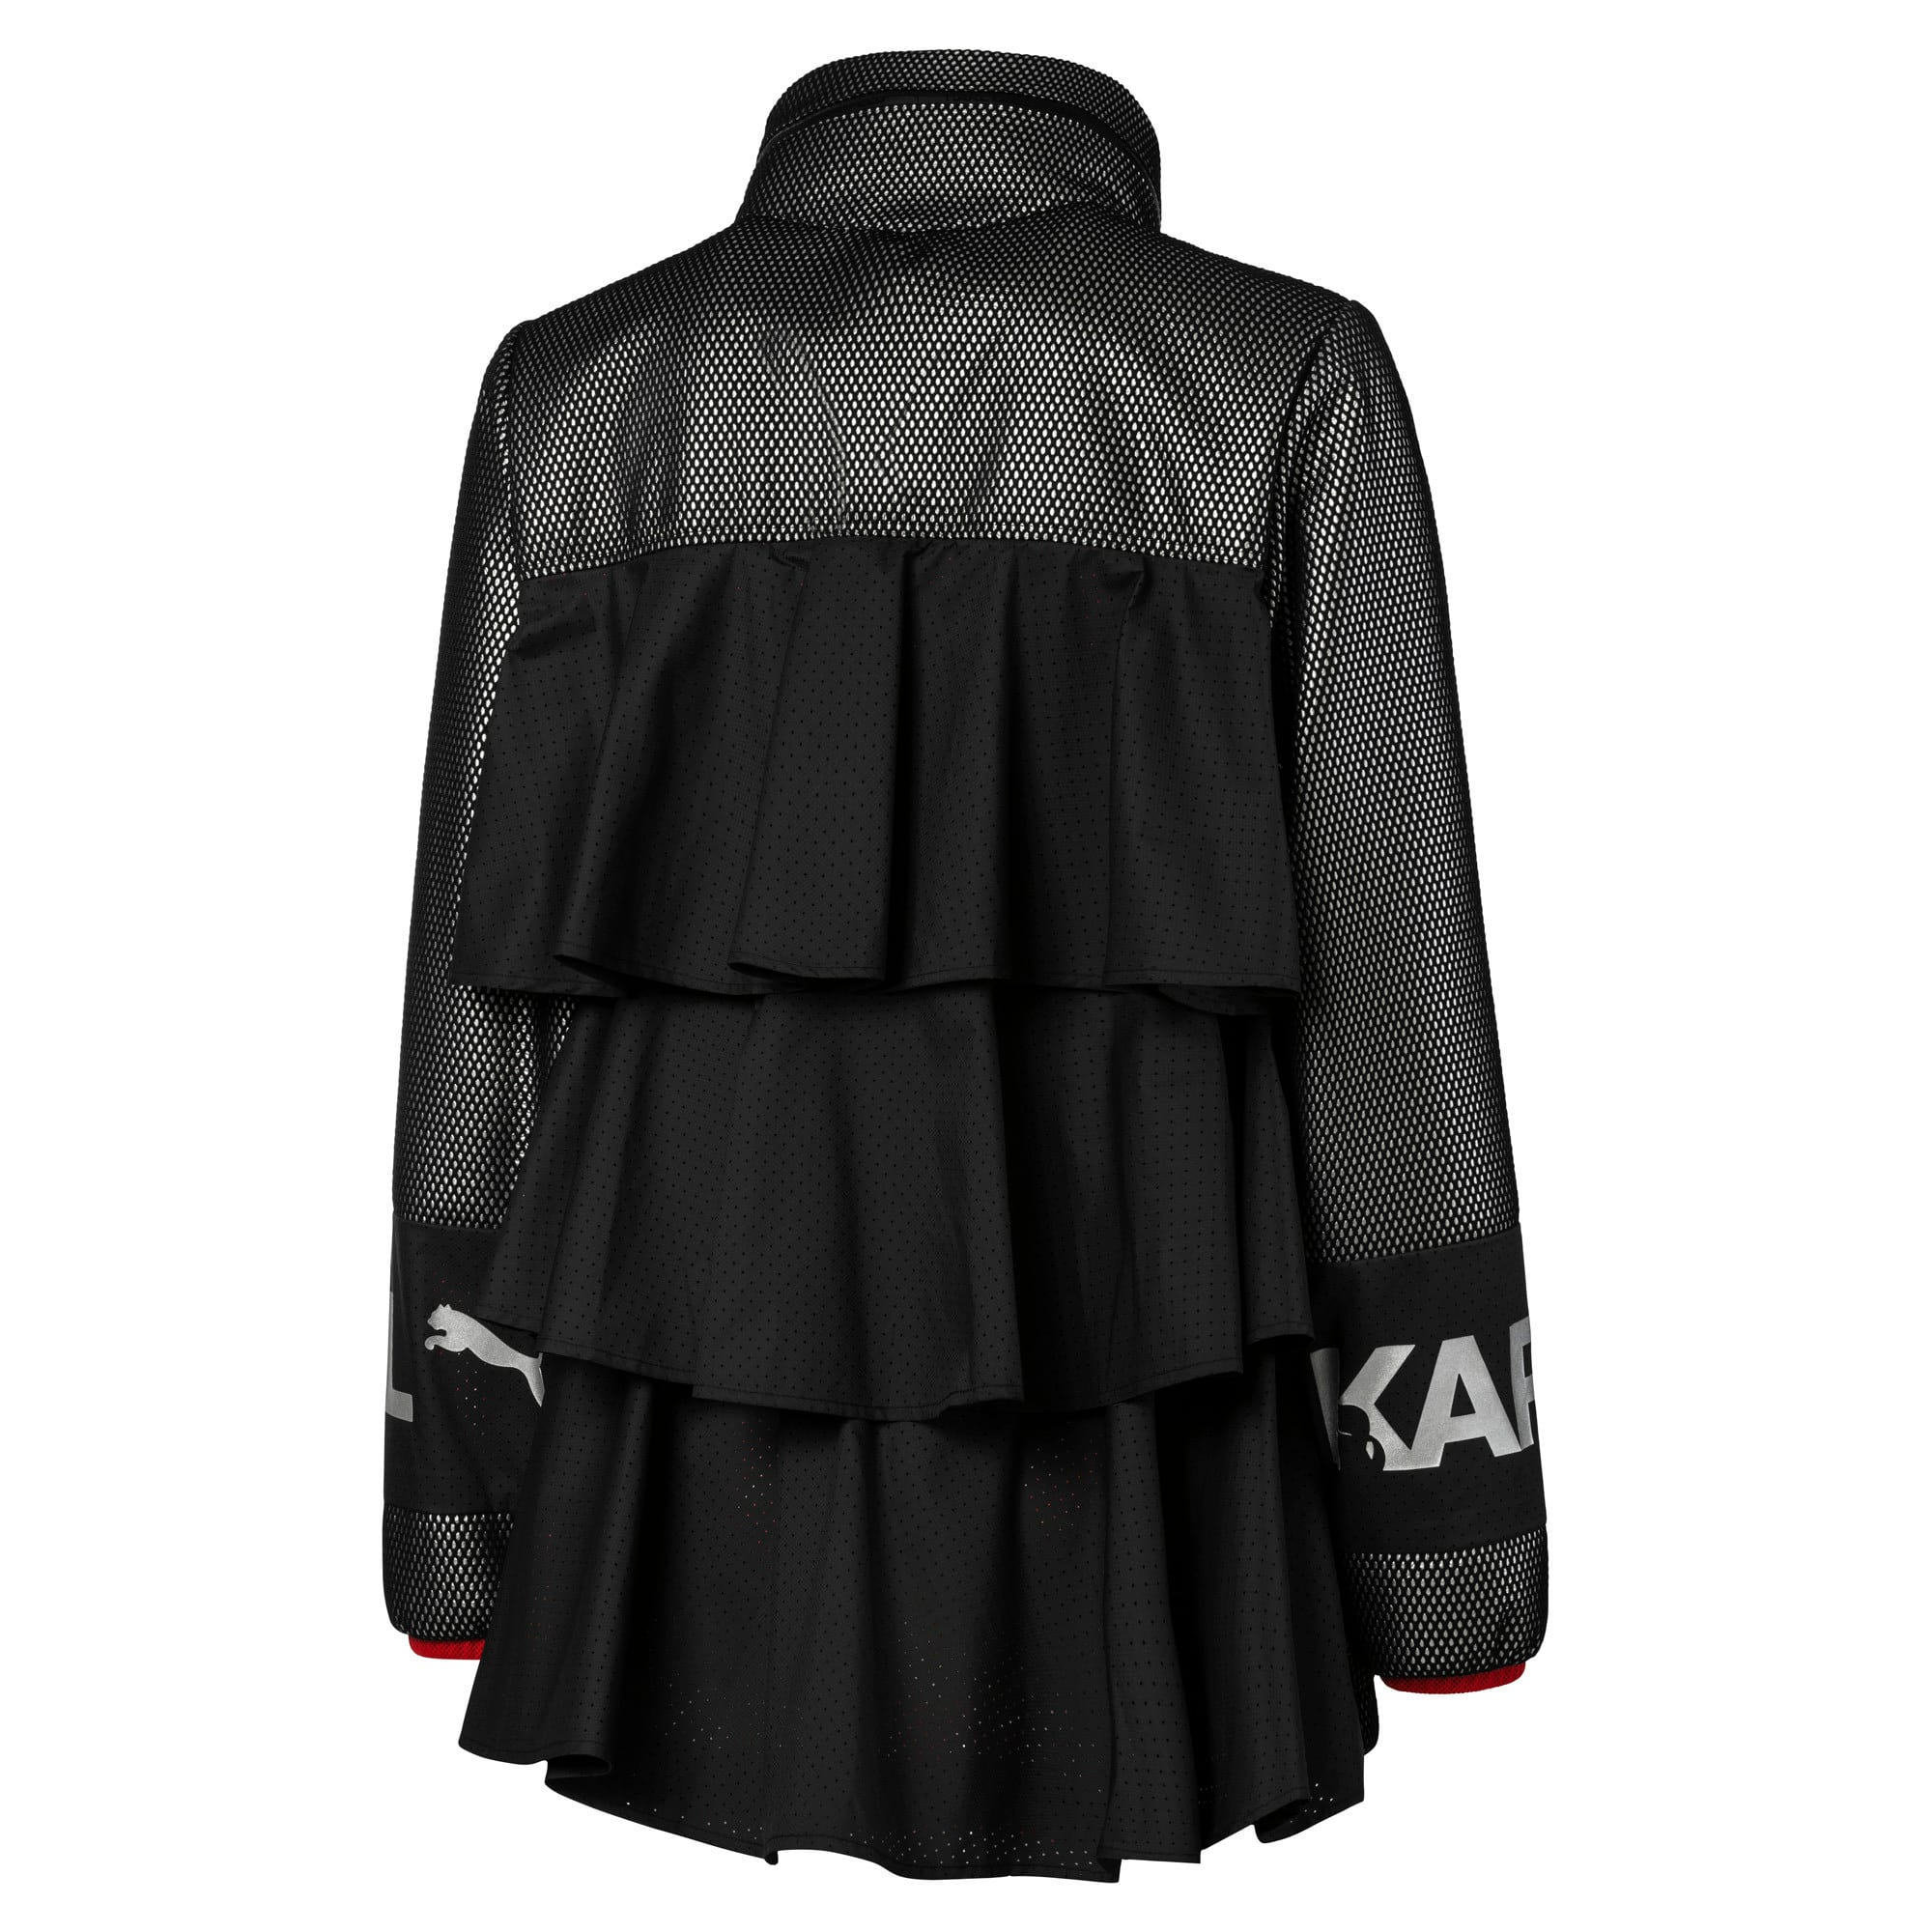 Thumbnail 4 of PUMA x KARL LAGERFELD Damen Outerwear Jacke, Puma Black, medium